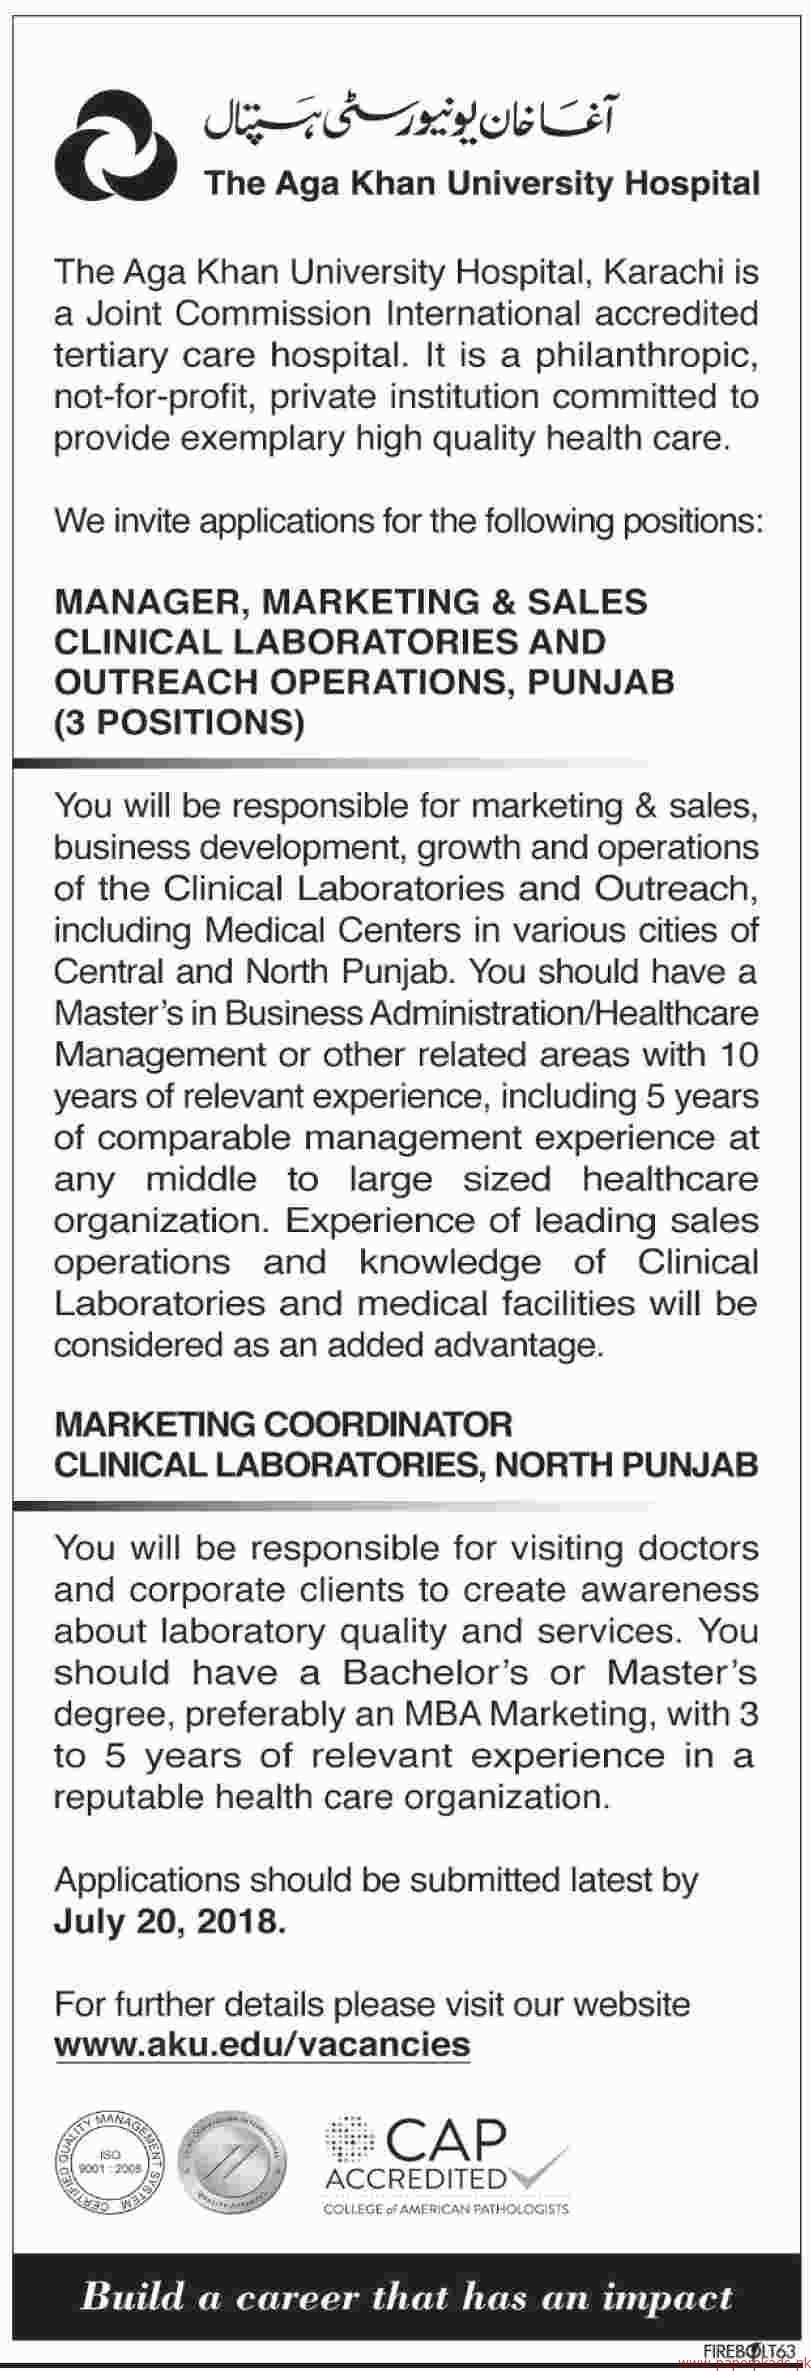 The AGA Khan University Hospital Jobs 2018 Latest